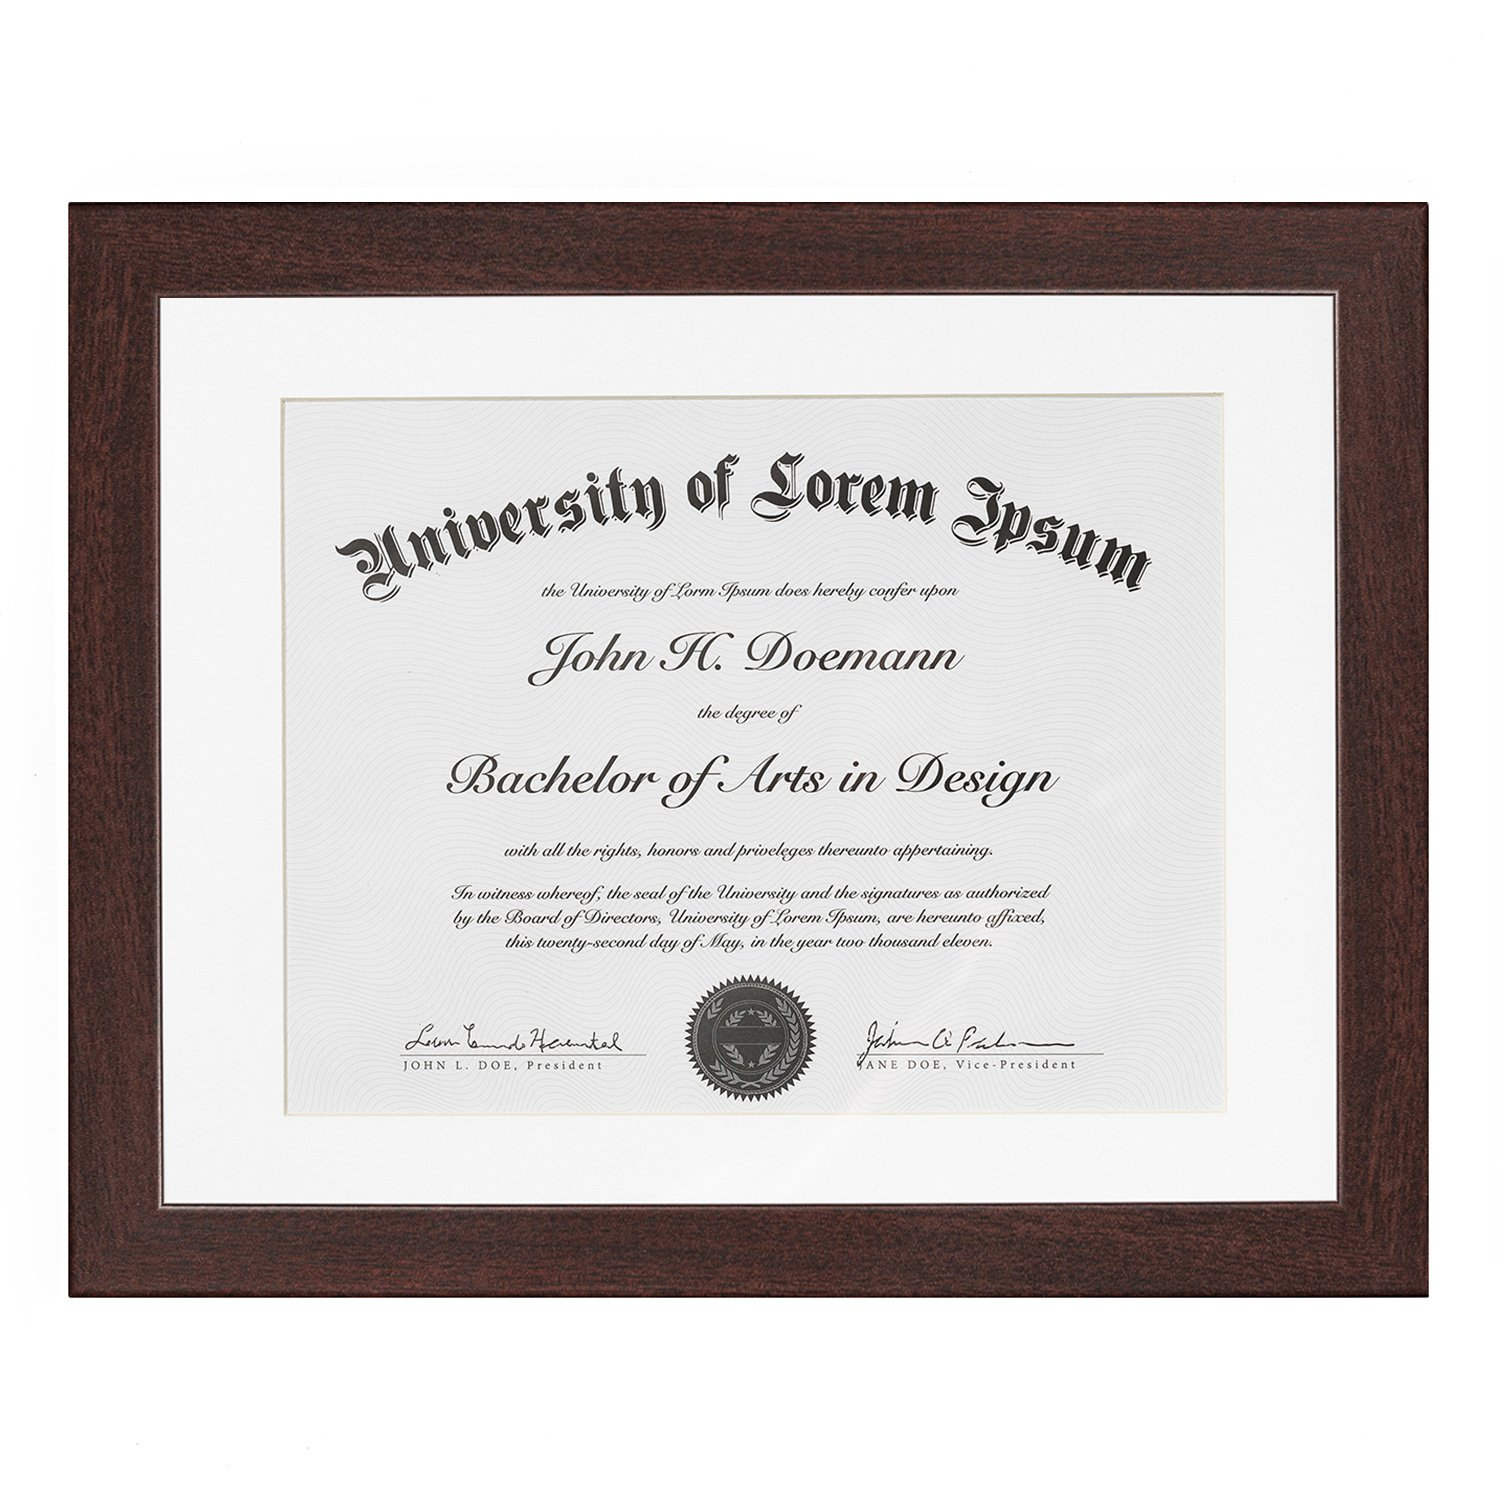 Americanflat Mahogany Document Frame - Made to Display Documents Sized 8.5x11 inches with Mat and 11x14 Without Mat - Document Frame, Certification Frame, High School Diploma Frame